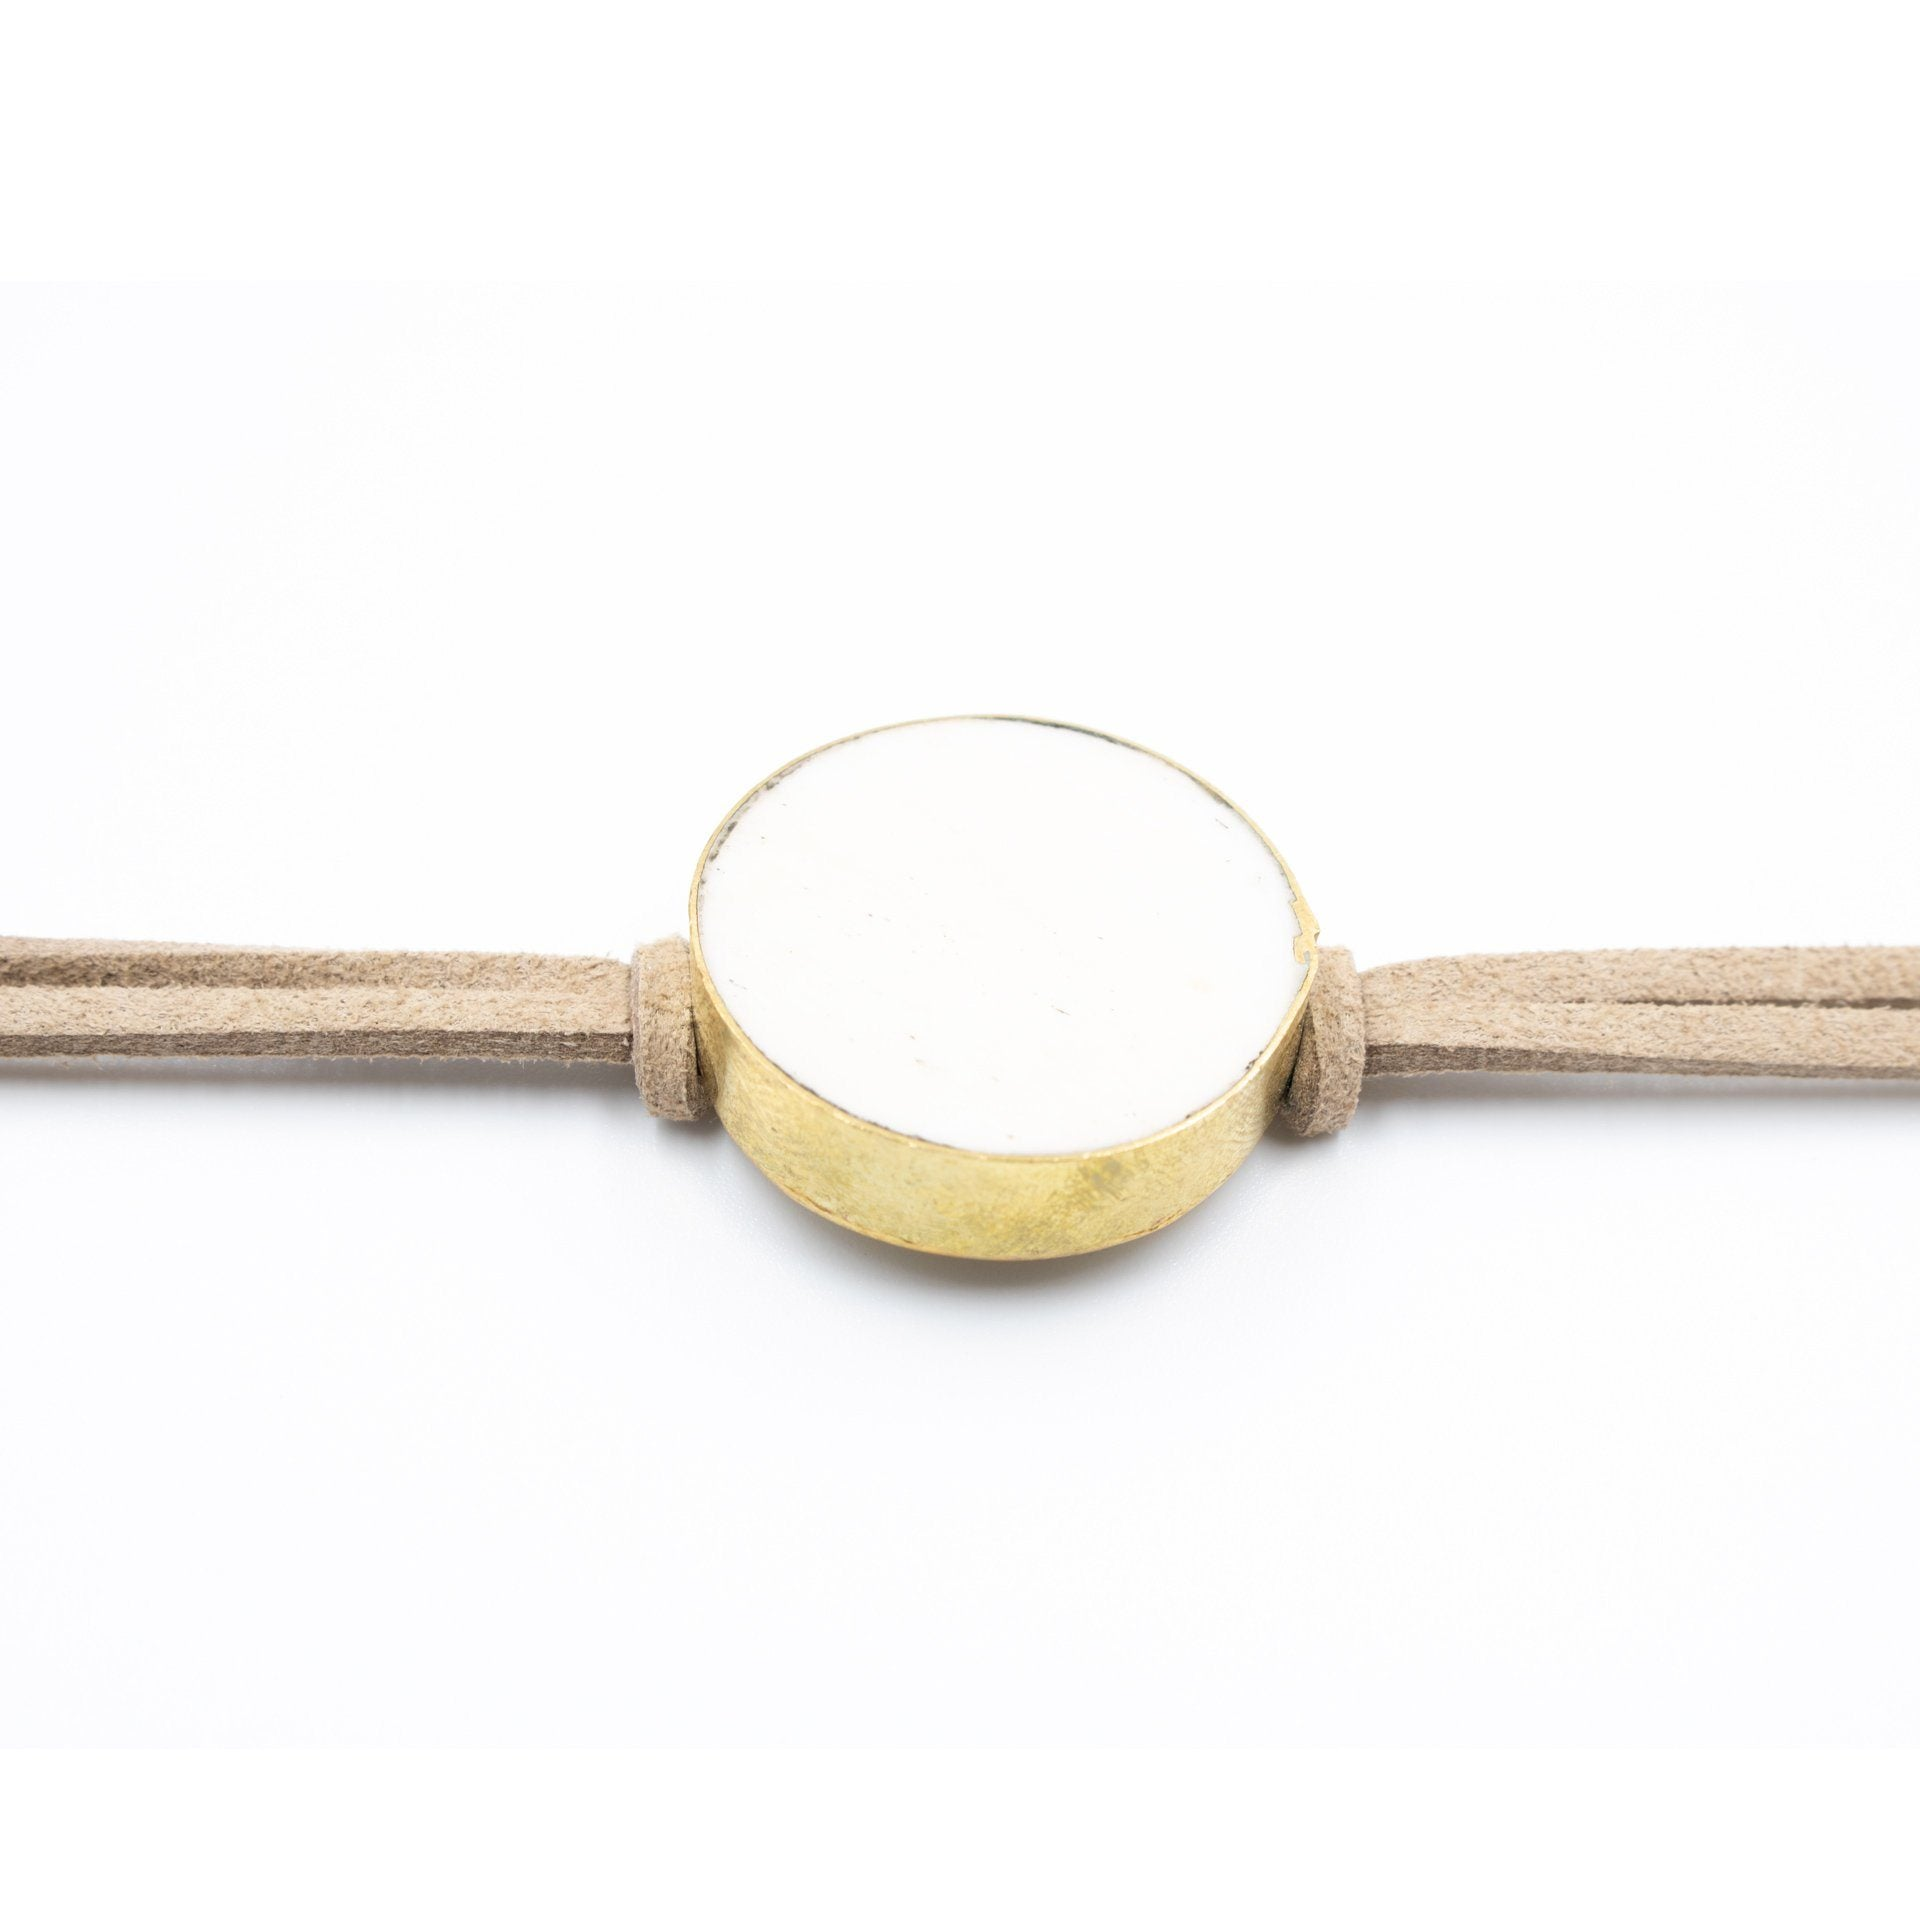 Ivory Ox Bone Flat Round Choker in Tan Suede - Arlo and Arrows